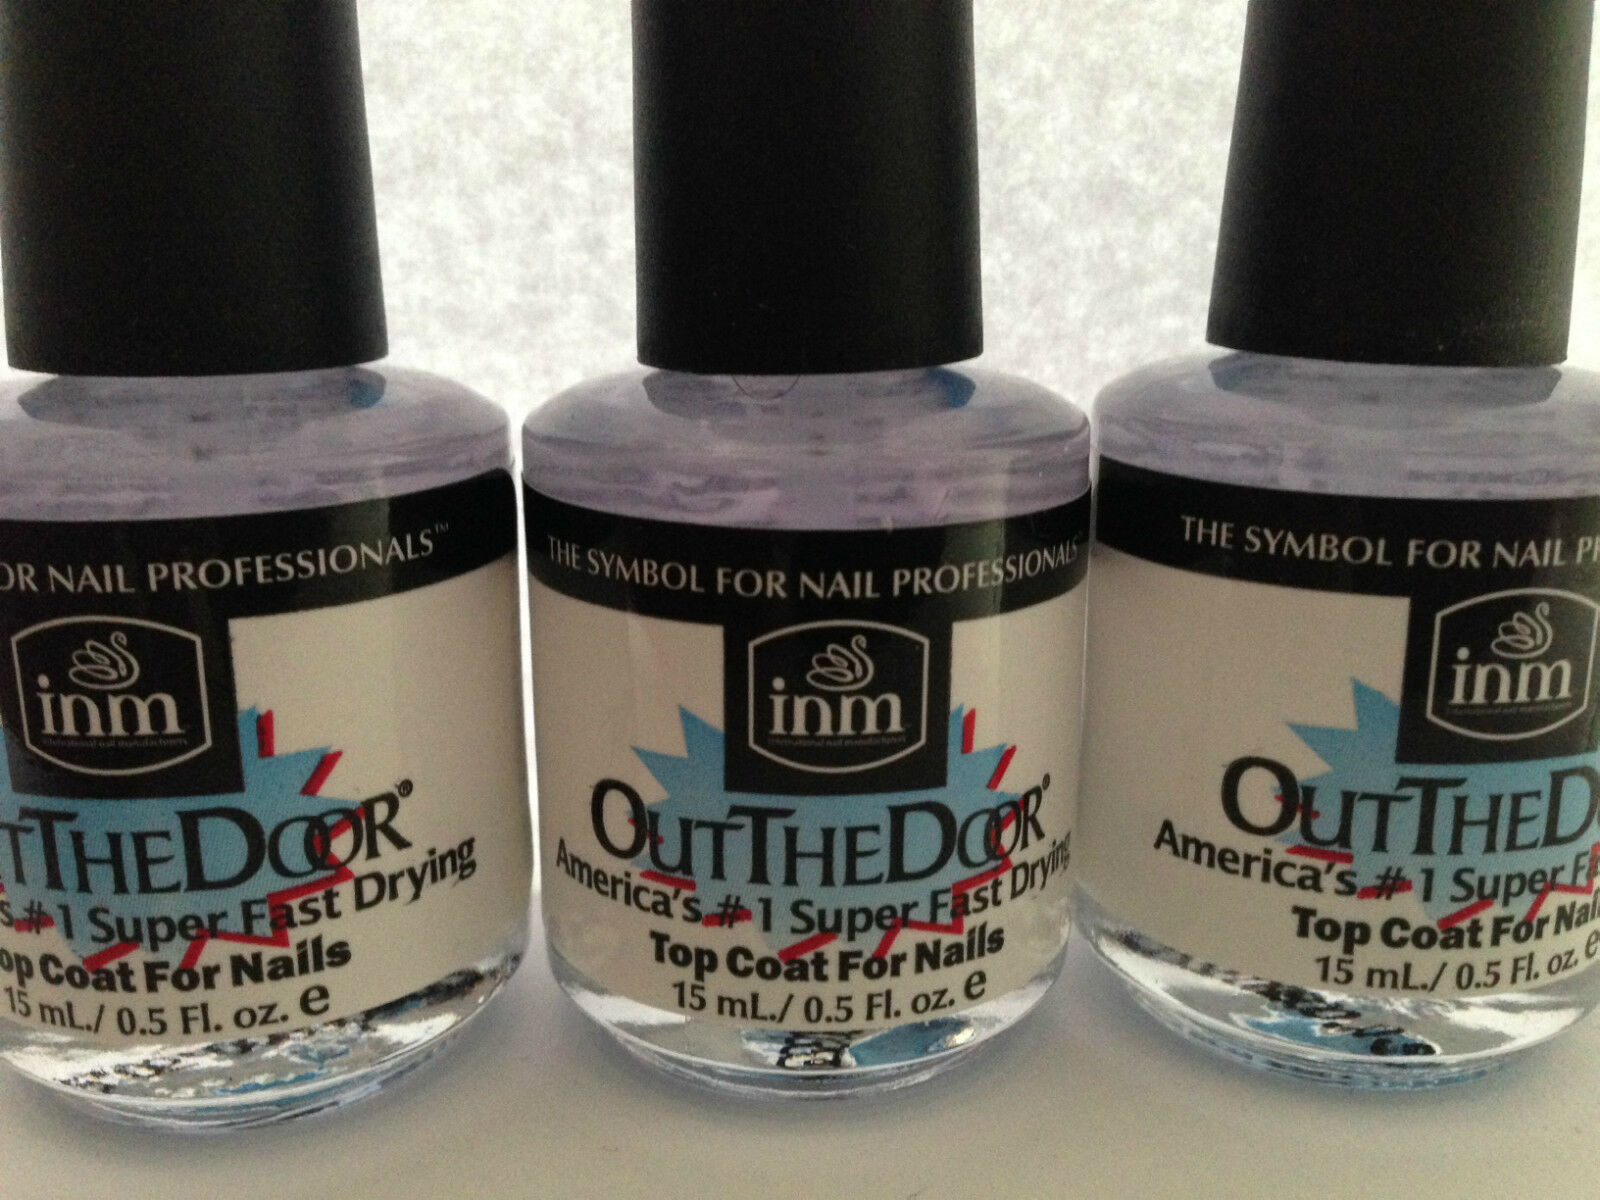 INM out The Door Super Fast Drying Top Coat 15ml Bottle   eBay